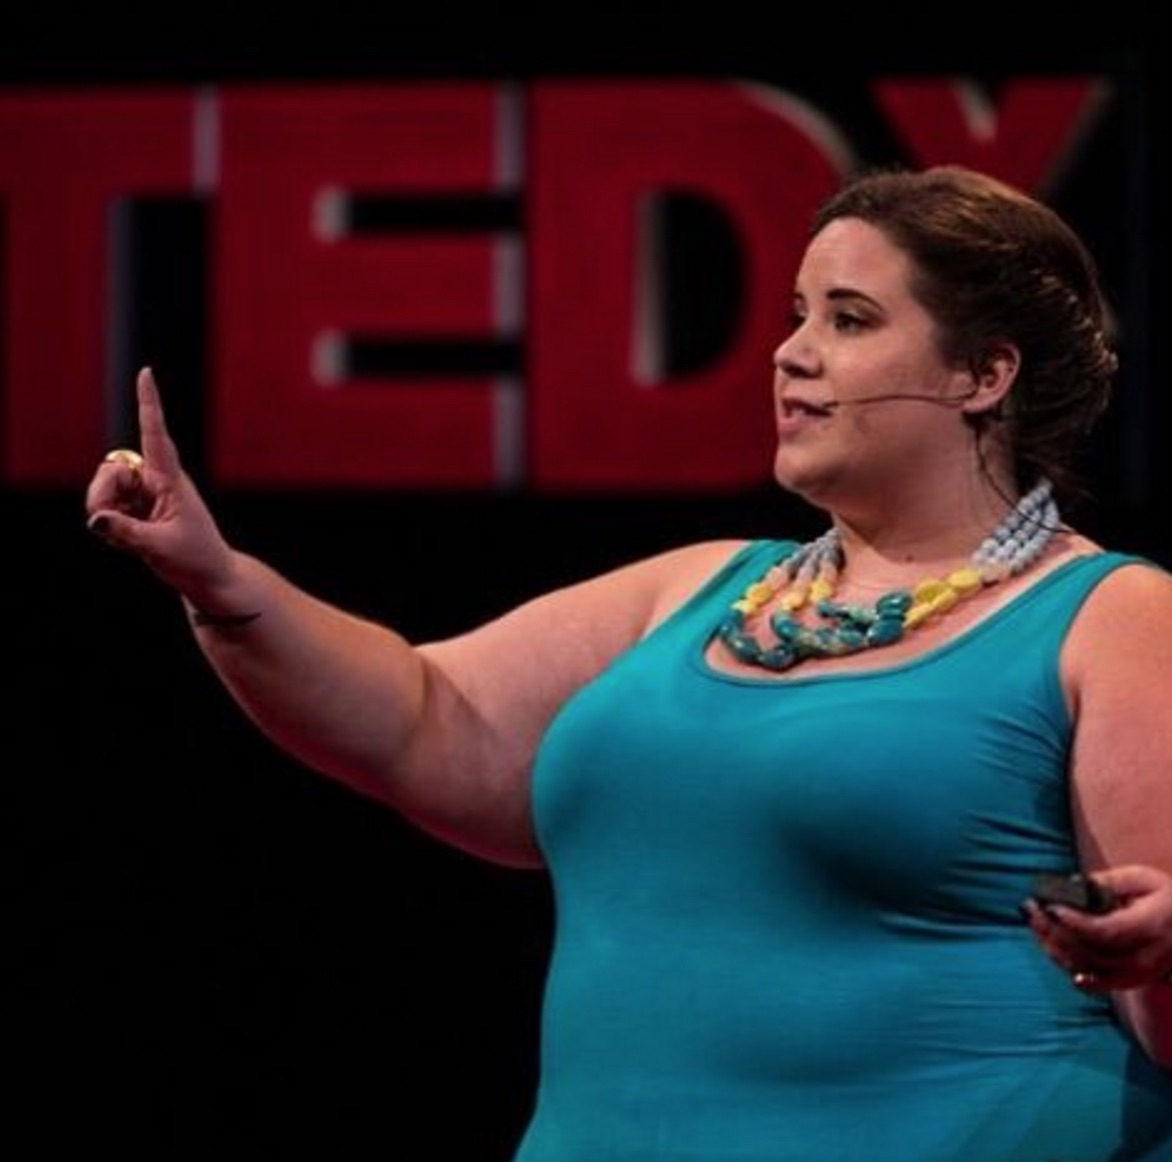 This body positive activist totally took down this body-shaming comedian and it is intense!